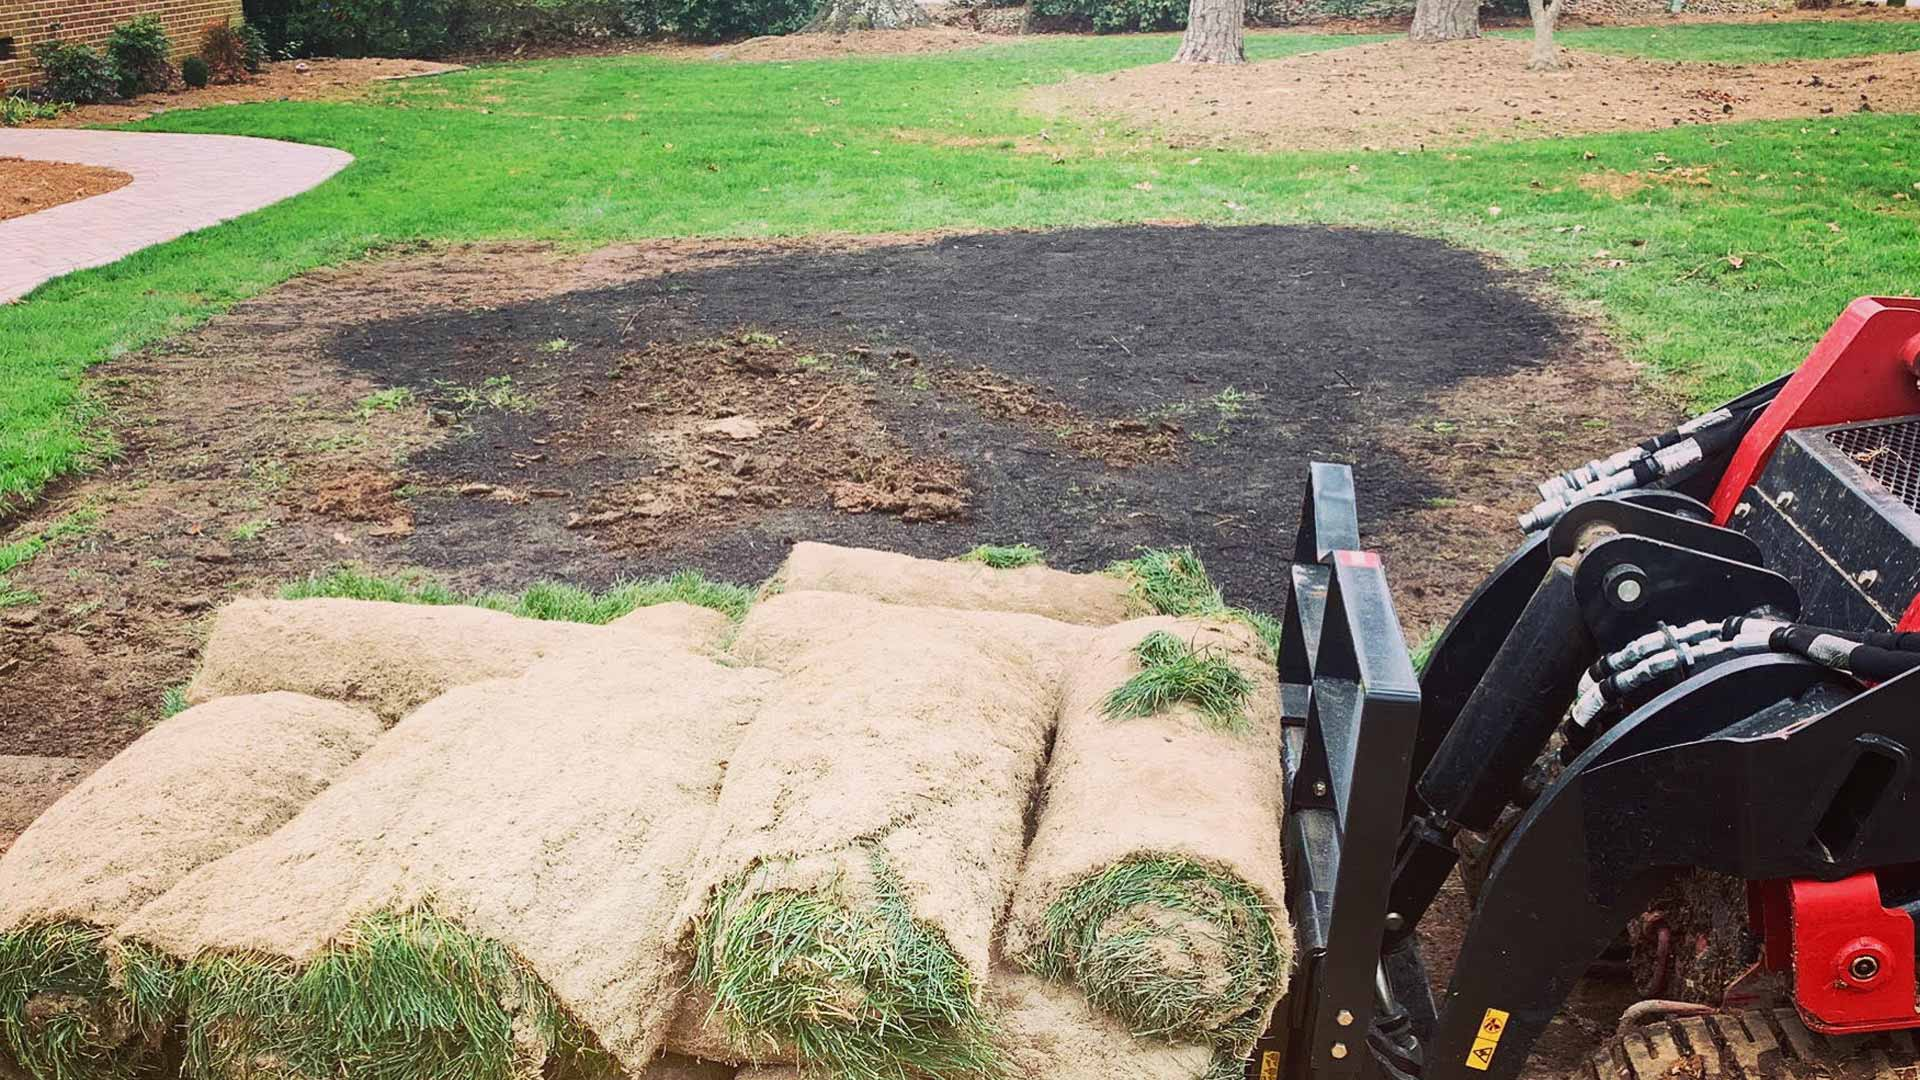 This homeowner is having sod installed to revitalize a large dead patch in their front yard.